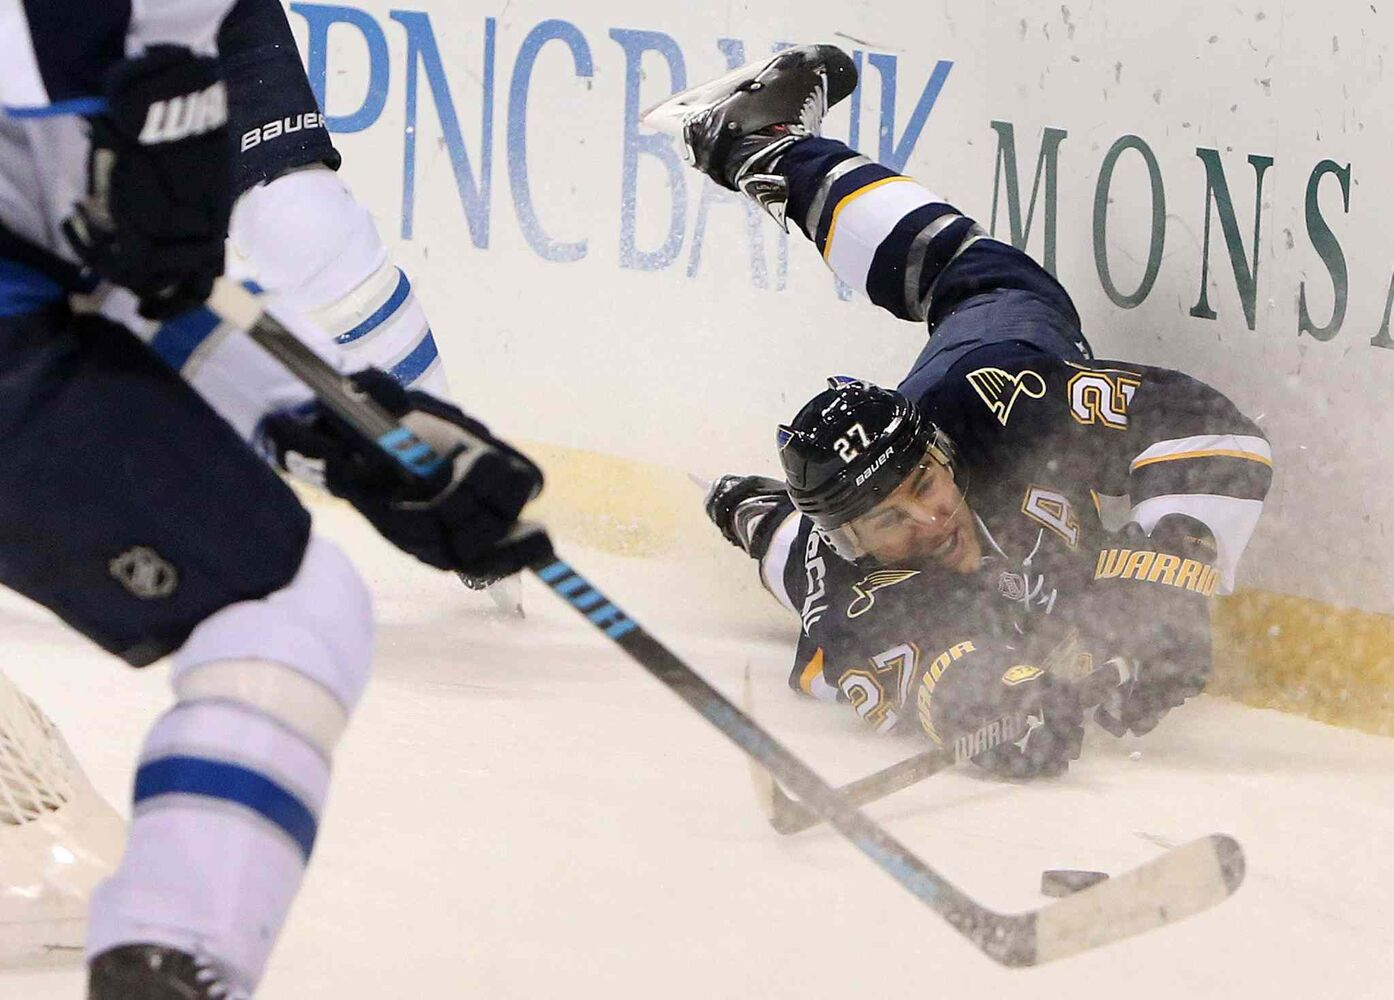 Alex Pietrangelo of the St. Louis Blues stretches for the puck as he slides into the boards during Saturday's game against the Winnipeg Jets. (Chris Lee/St. Louis Post-Dispatch/MCT)